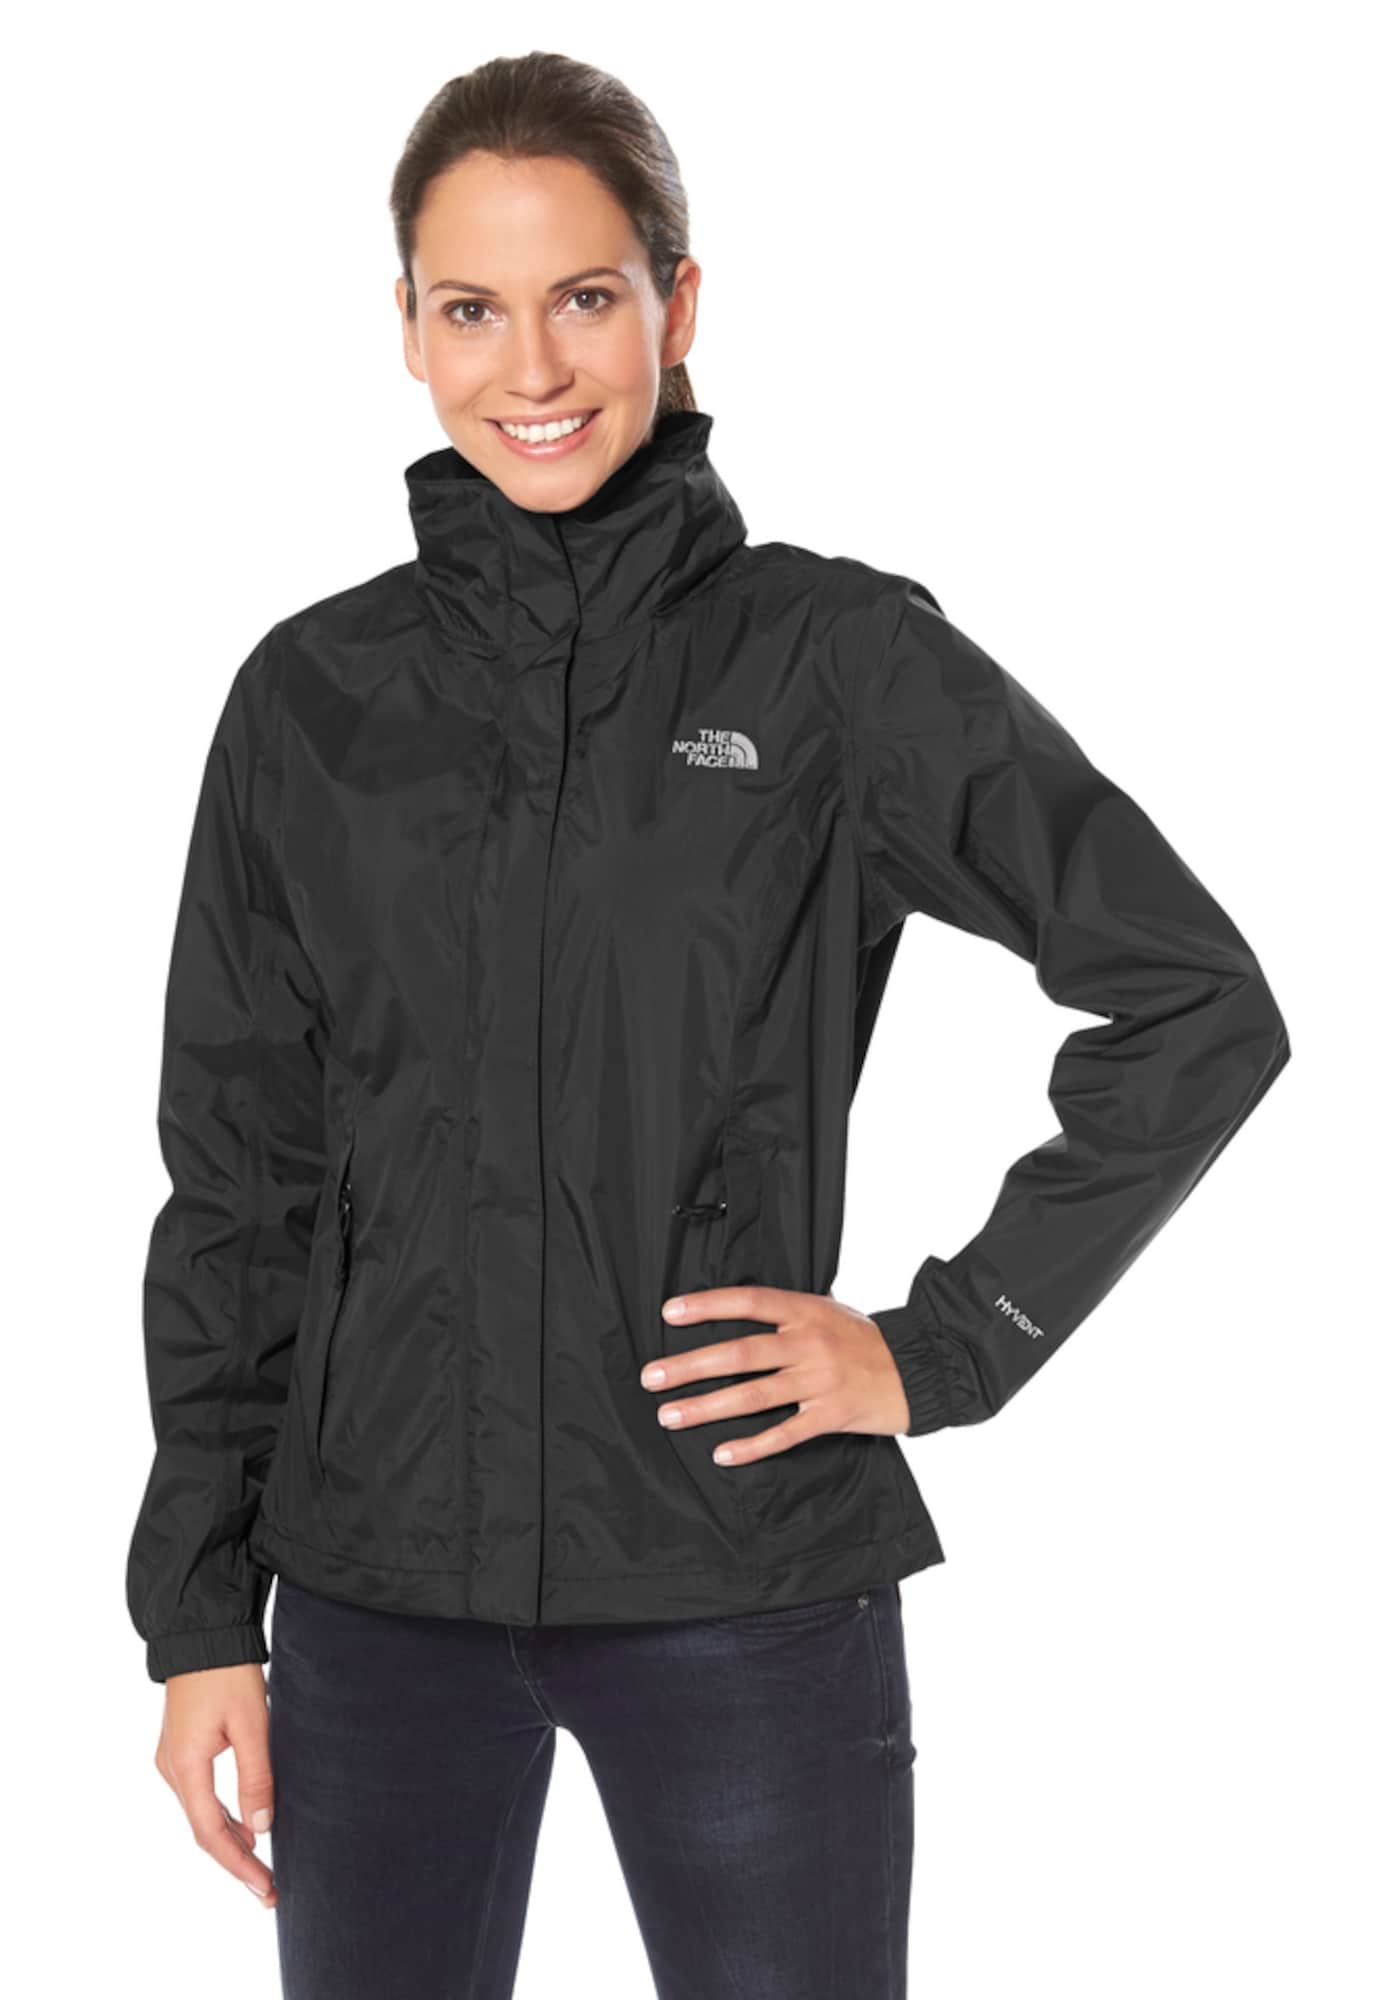 THE NORTH FACE, Dames Outdoorjas, zwart